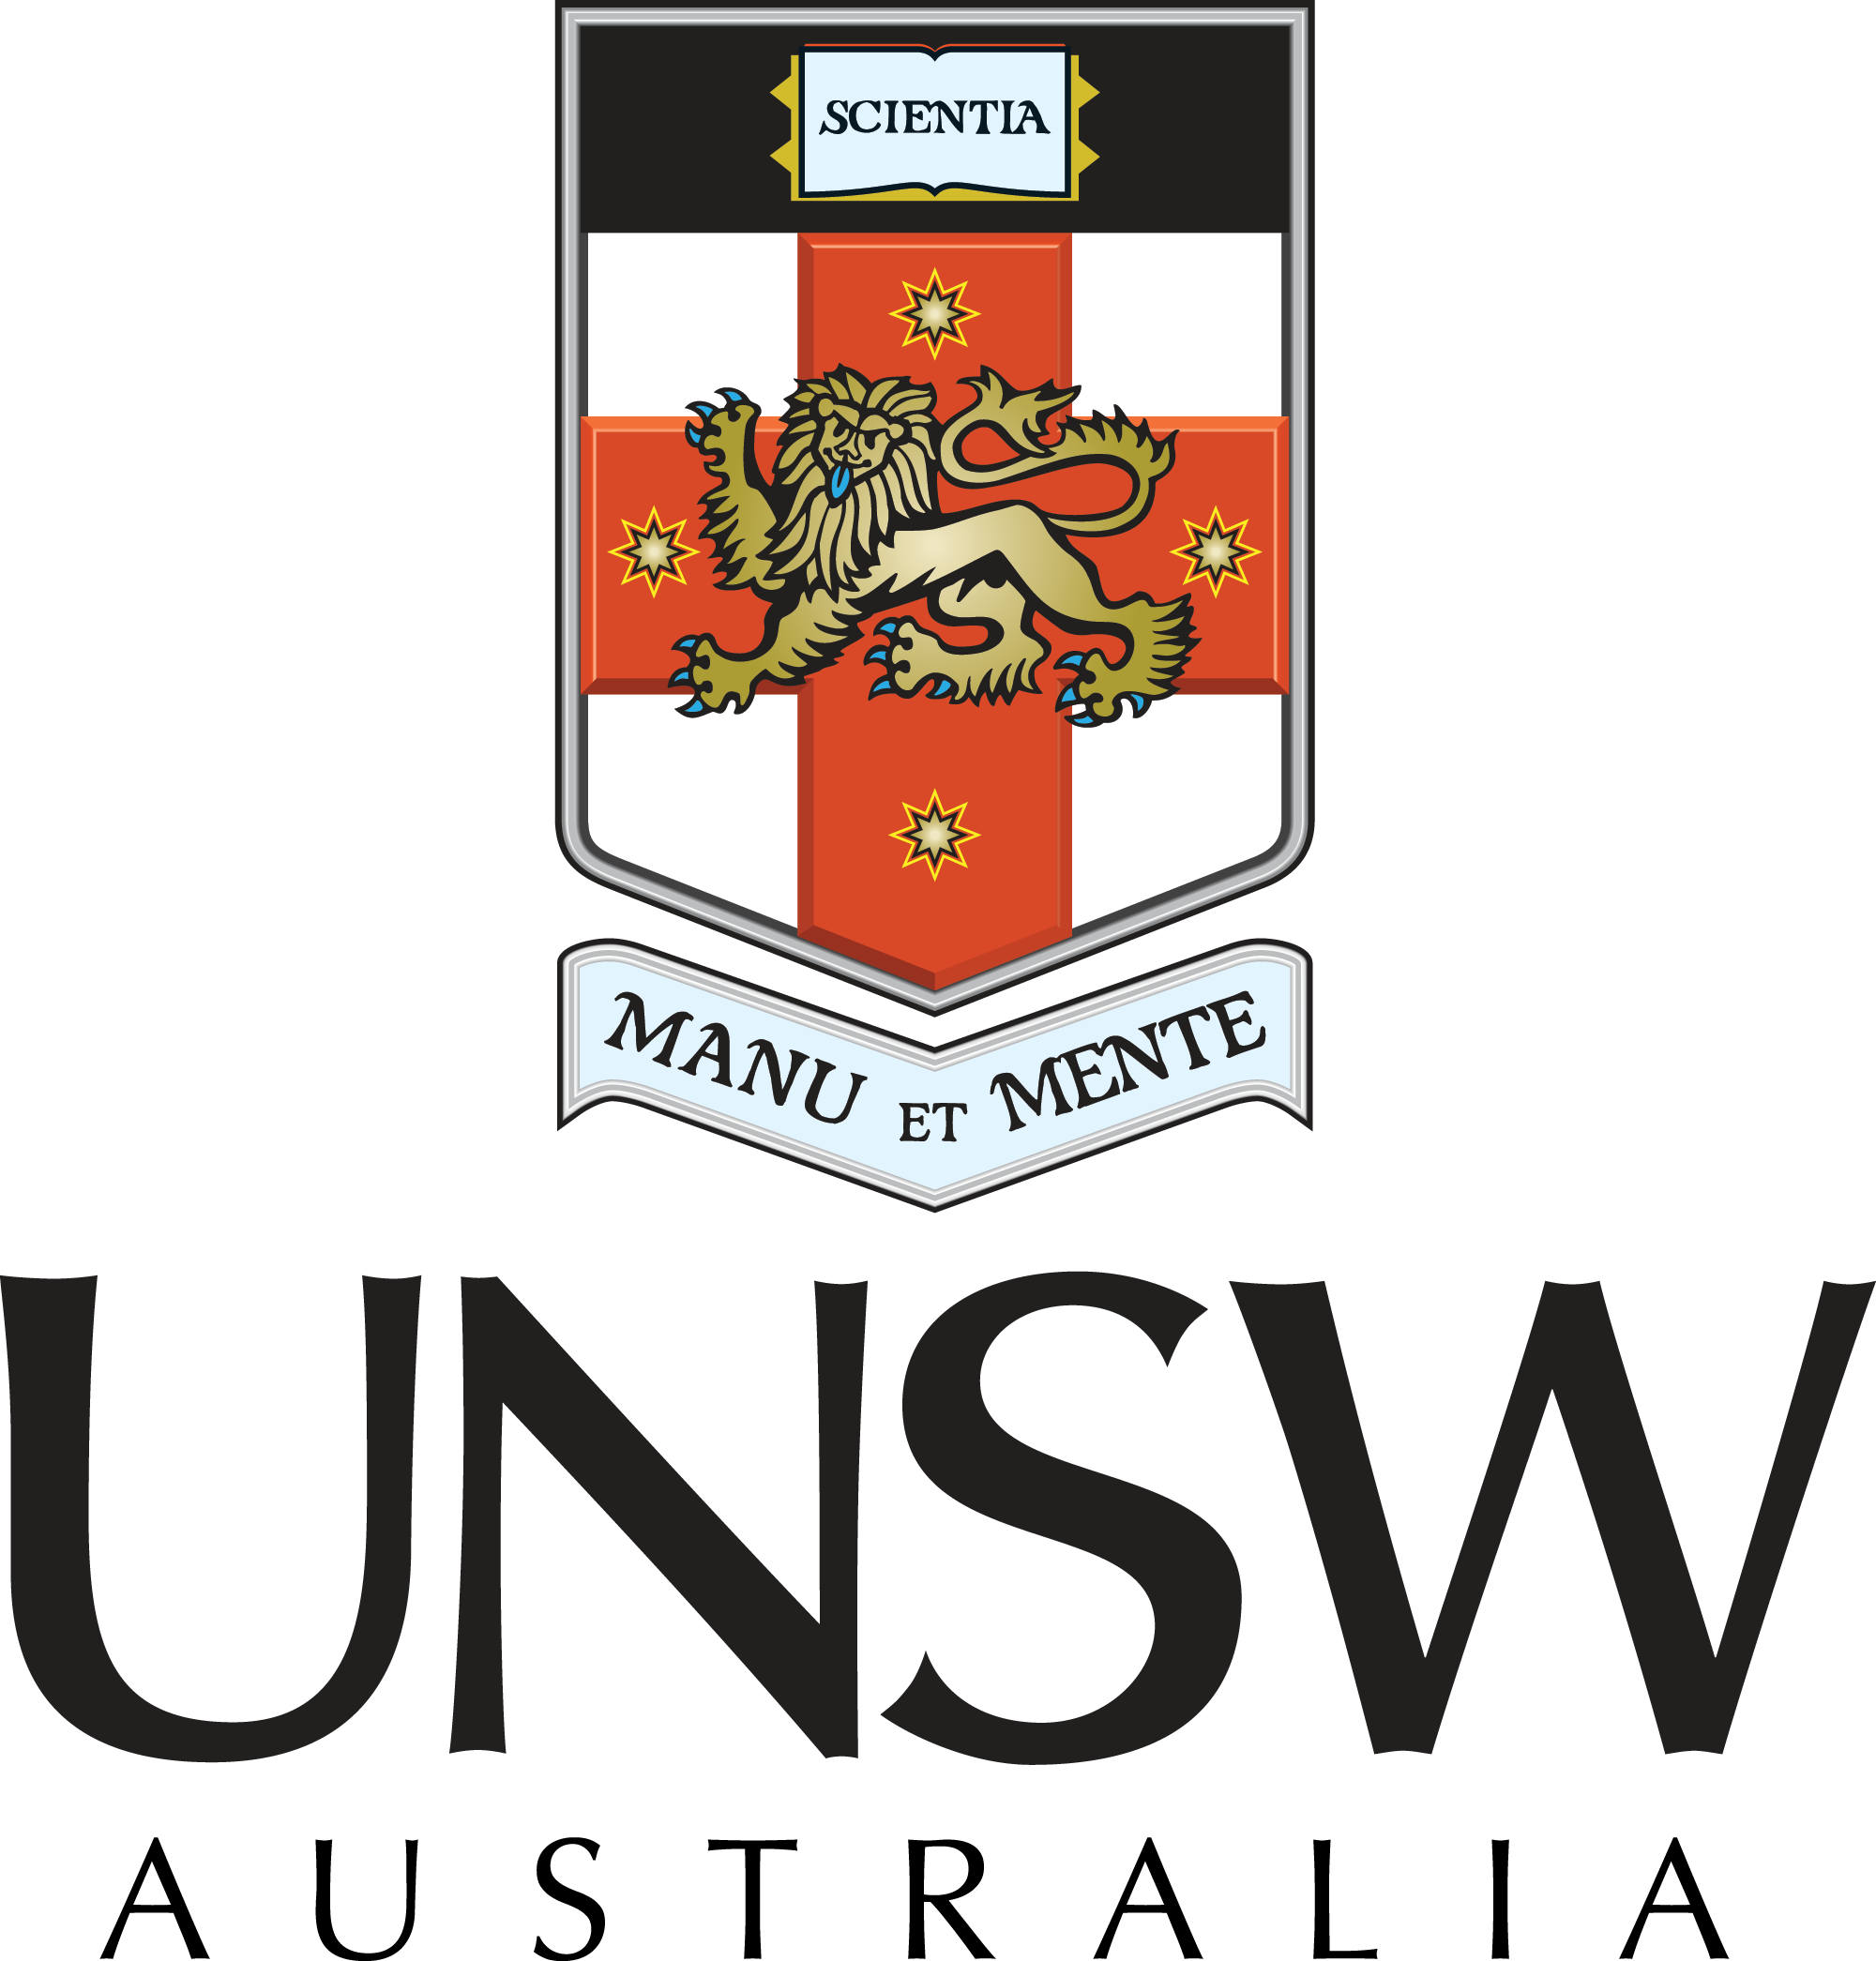 Student Accommodation in Sydney near University of New South Wales (UNSW)